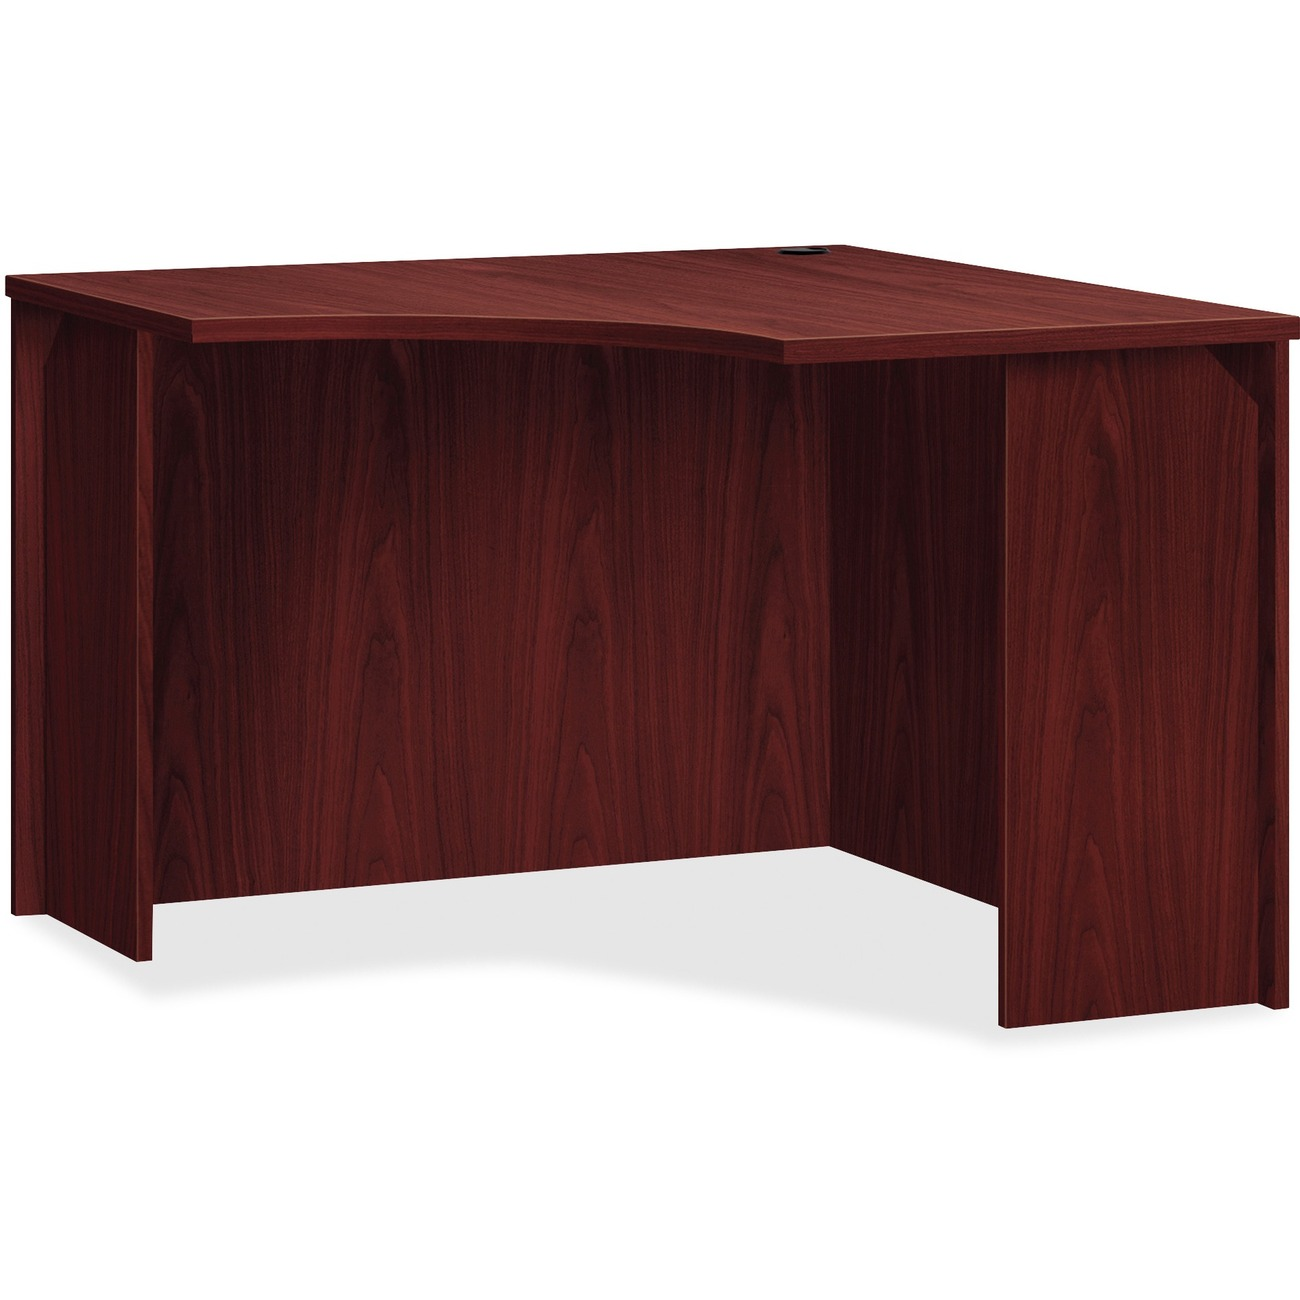 ocean stationery and office supplies furniture furniture rh oceanstationery com hon basyx office furniture